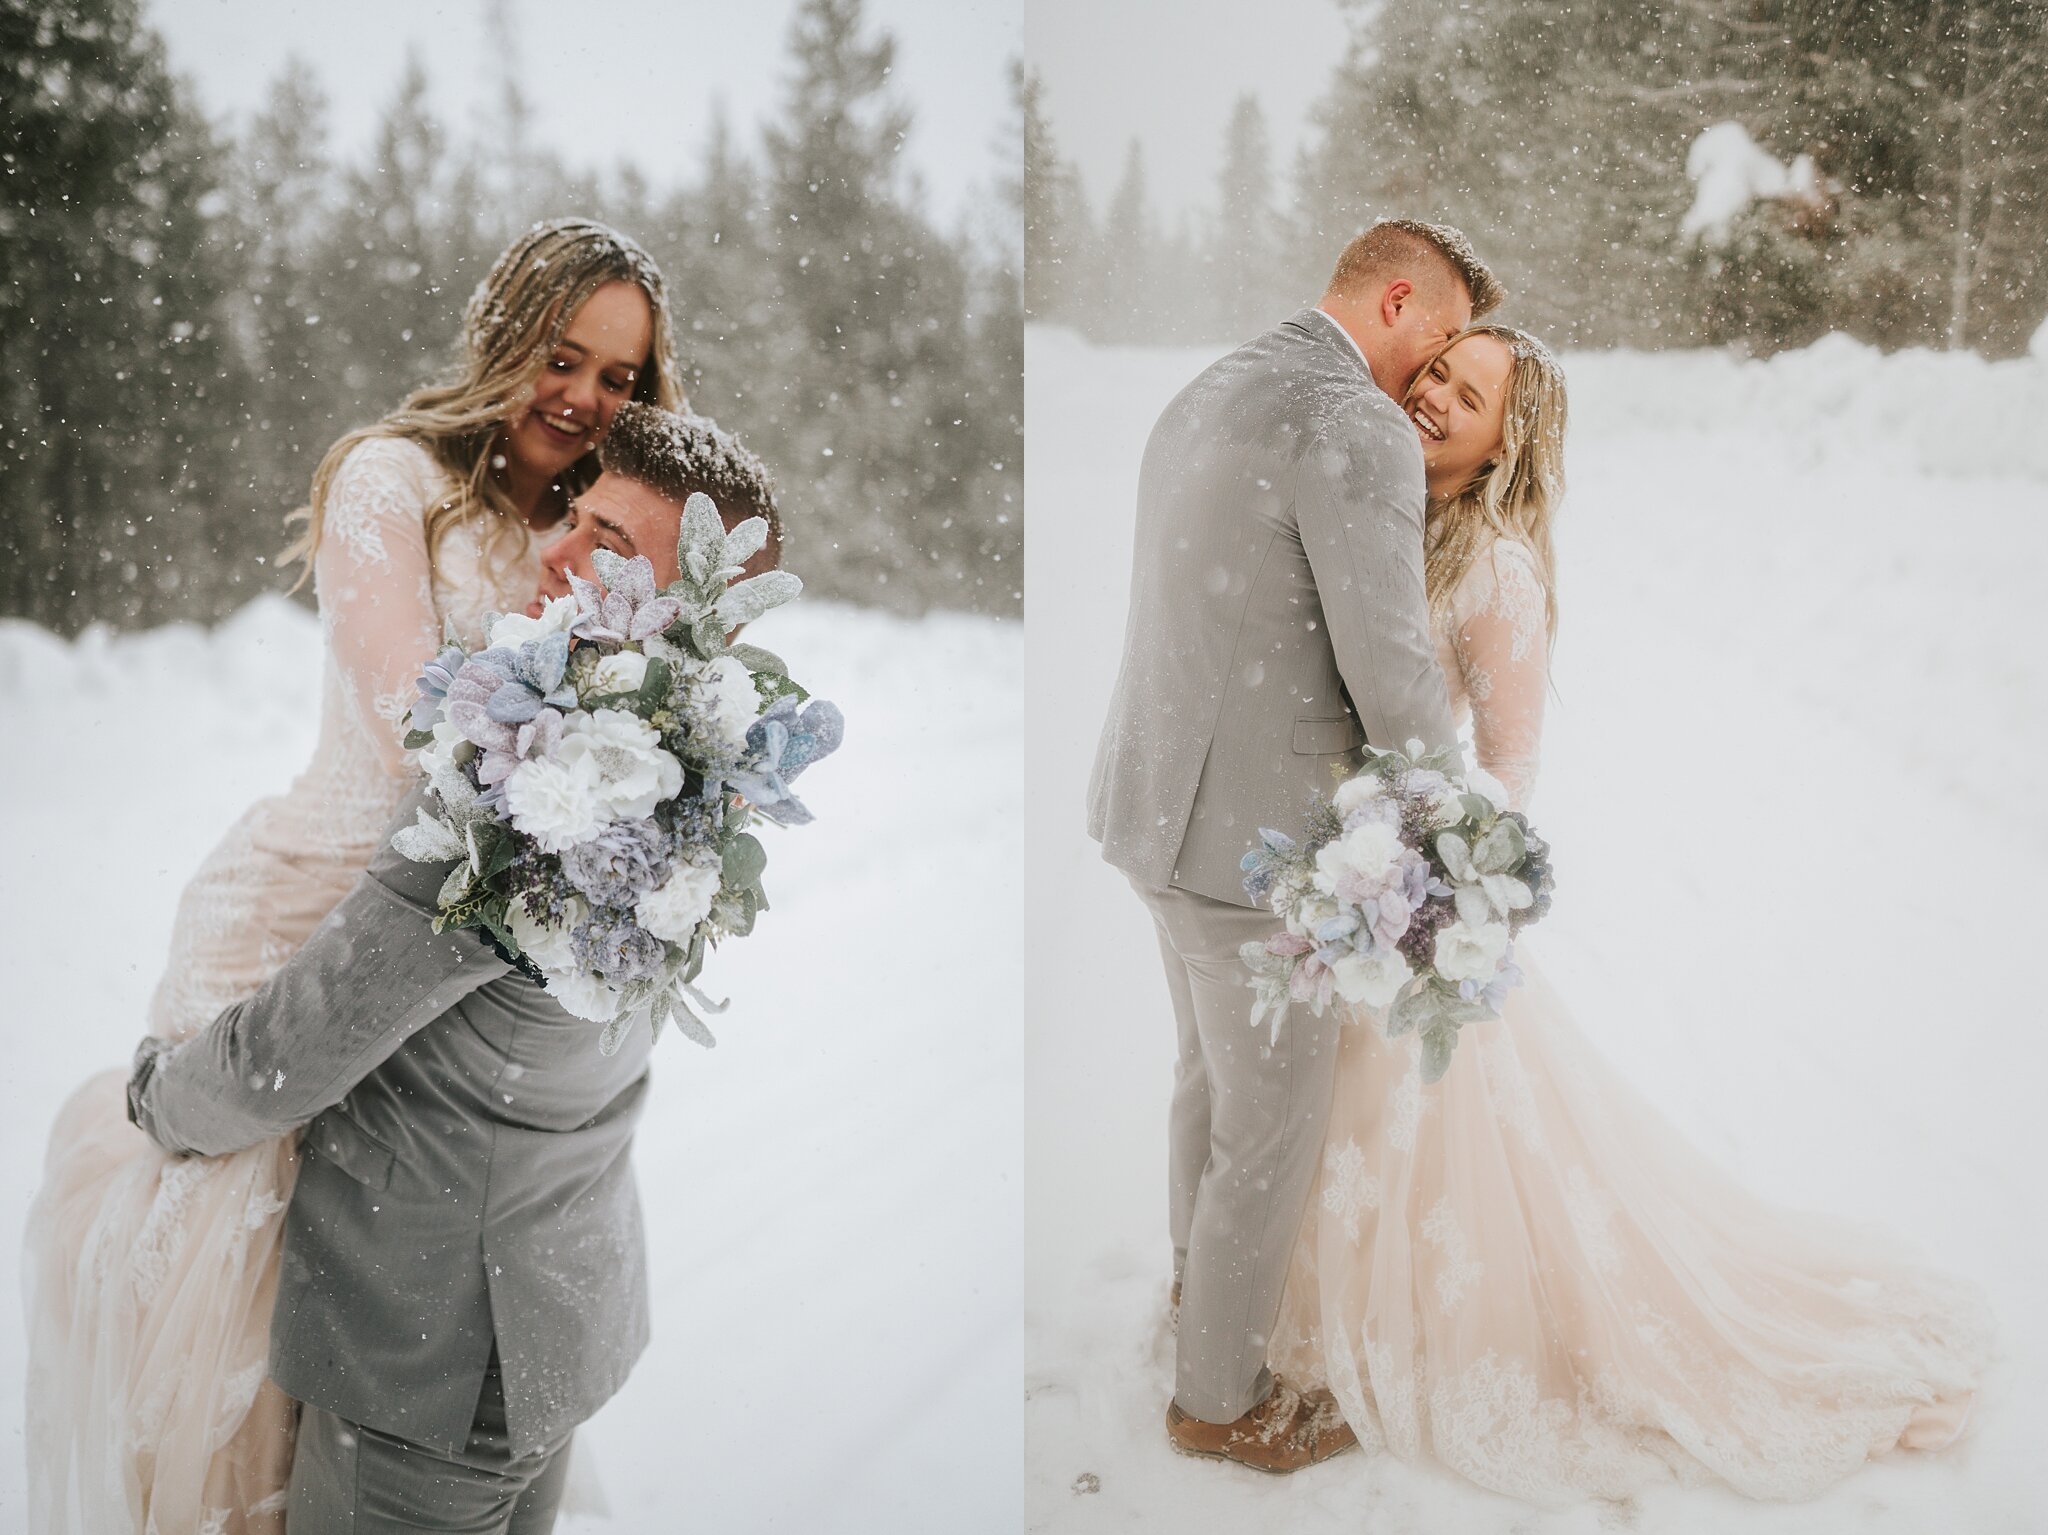 winter-bridal-dream-session-utah-valley-winter-wedding-snowy-bride-look-for-the-light-photo-video